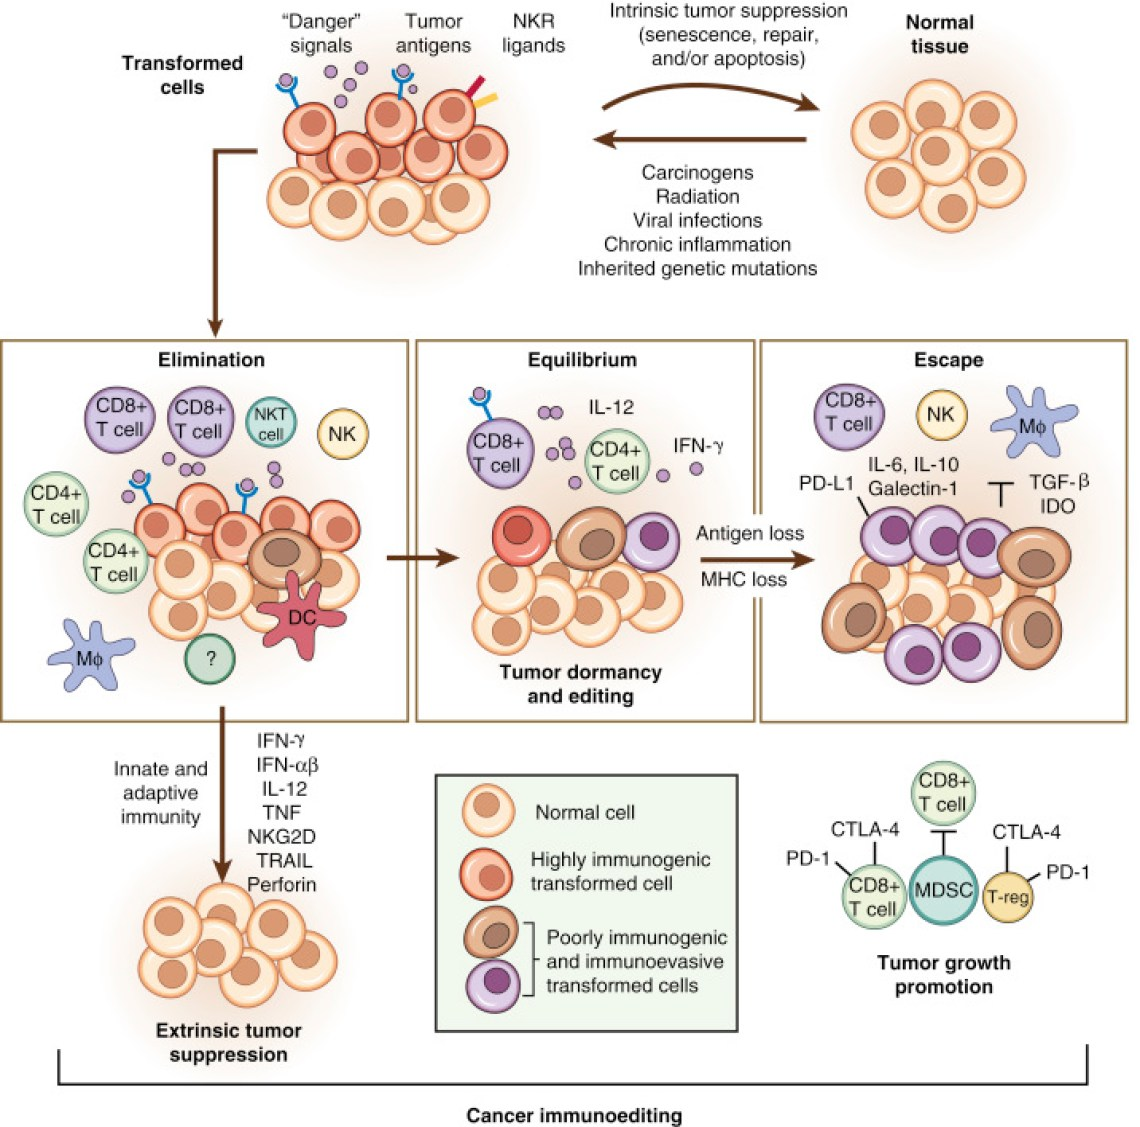 Figure 2: An illustration of the concept of cancer immuno-editing. The immune-editing process by cancer is divided into three stages: elimination, equilibrium and escape. As normal cells become transformed, they express certain molecules, including tumour-specific antigens on their surface. These antigens become recognised by both the innate and adaptive arms of the immune system which leads to elimination of the incipient cancer cells. However, due to high intratumoural heterogeneity, not all cancer cells are eliminated. In the equilibrium stage, the subpopulation of cancer cells with reduced immunogenicity can remain dormant for years. Subsequently, these cancer cells might outcompete the immune system by downregulating their surface antigens or inducing an immunosuppressive microenvironment. This represents the escape stage. Cancer cells that escaped the immune system are able to grow, divide and manifest as a clinically overt tumour. CTLA-4, cytotoxic T-lymphocyte–associated antigen 4; IDO, indoleamine 2,3-dioxygenase; DC, dendritic cell; MHC, major histocompatibility complex; NK, natural killer; NKT, natural killer T-cell; PD-L1, programmed cell death ligand 1; TGF, transforming growth factor–beta; IFN, interferon; IL, interleukin; PD-1, programmed cell death 1; T-reg, T-regulatory cells. Figure adapted from [86].